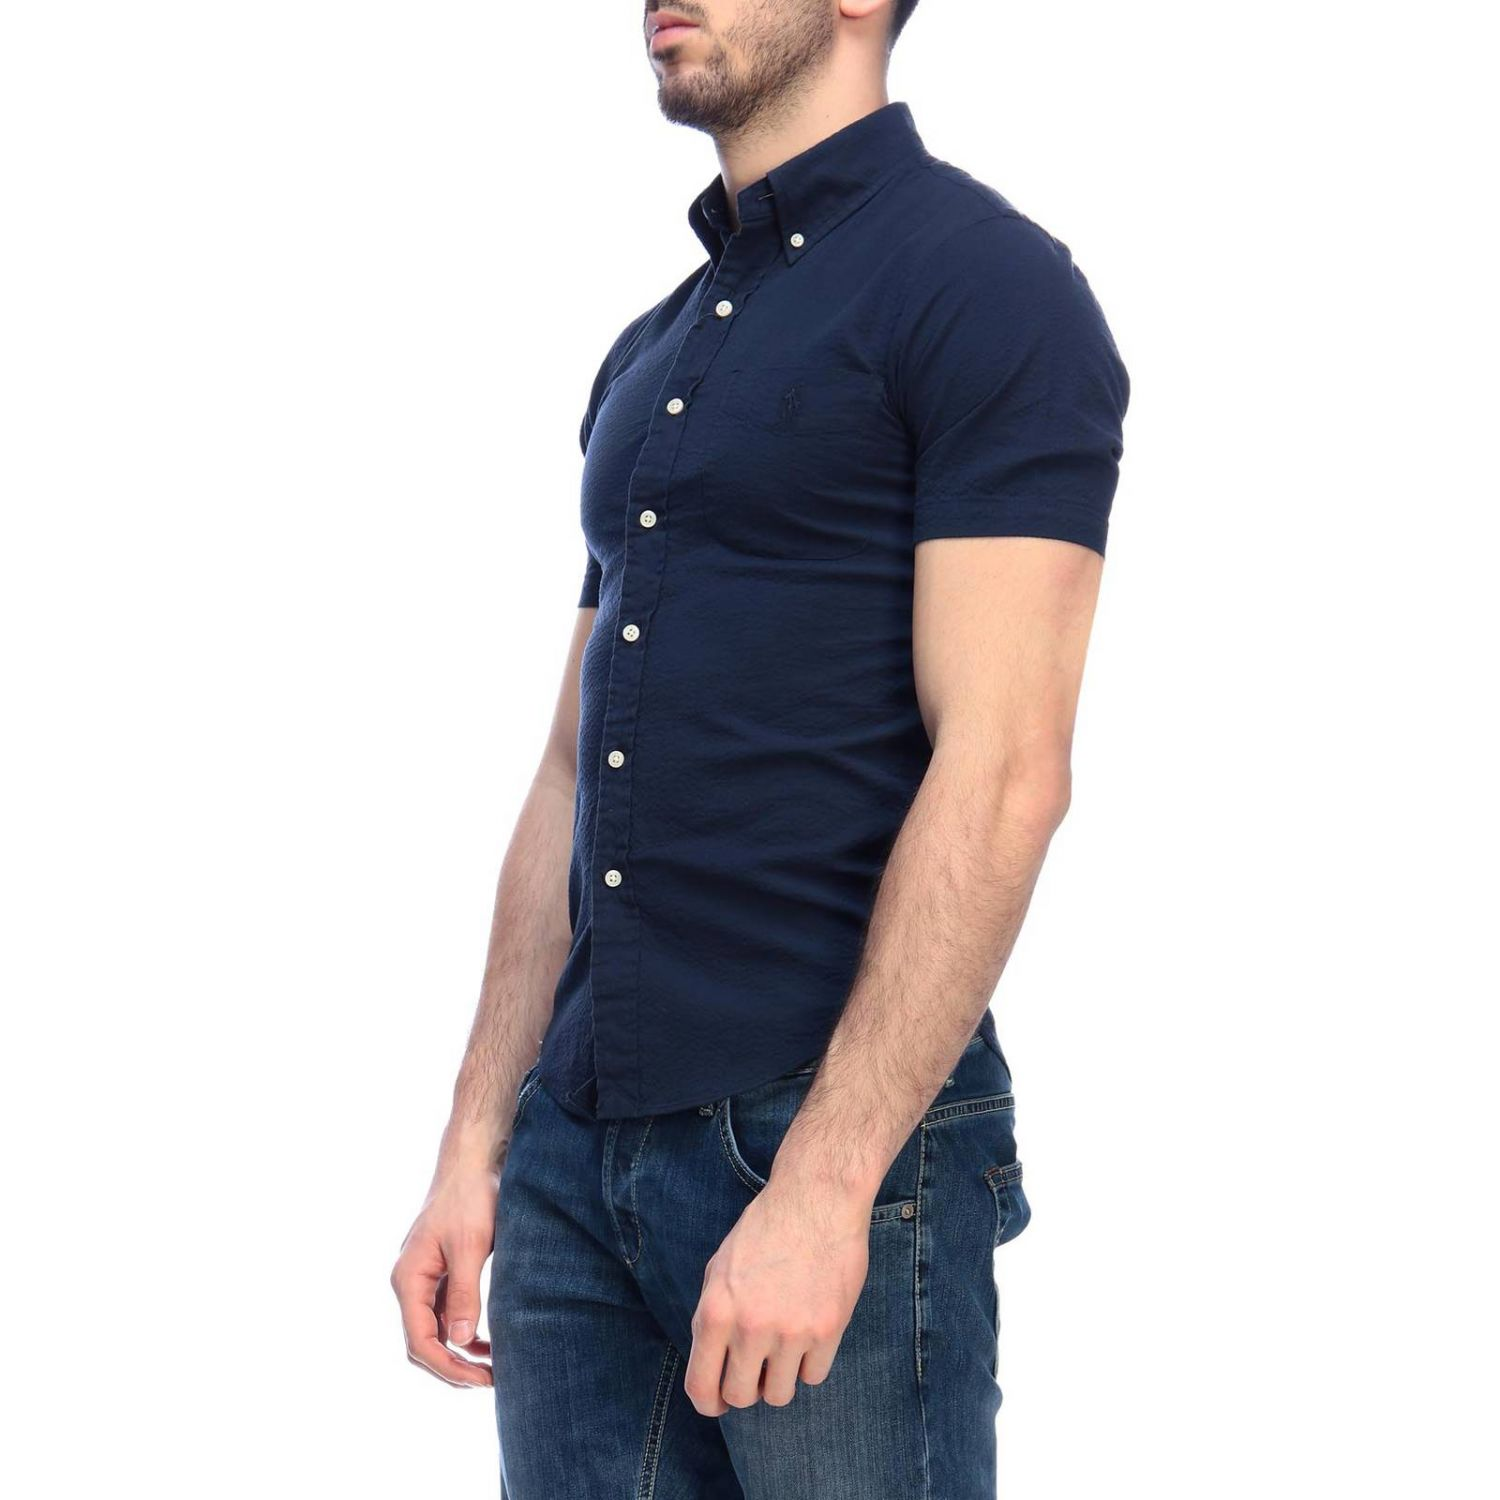 Shirt men Polo Ralph Lauren navy 2